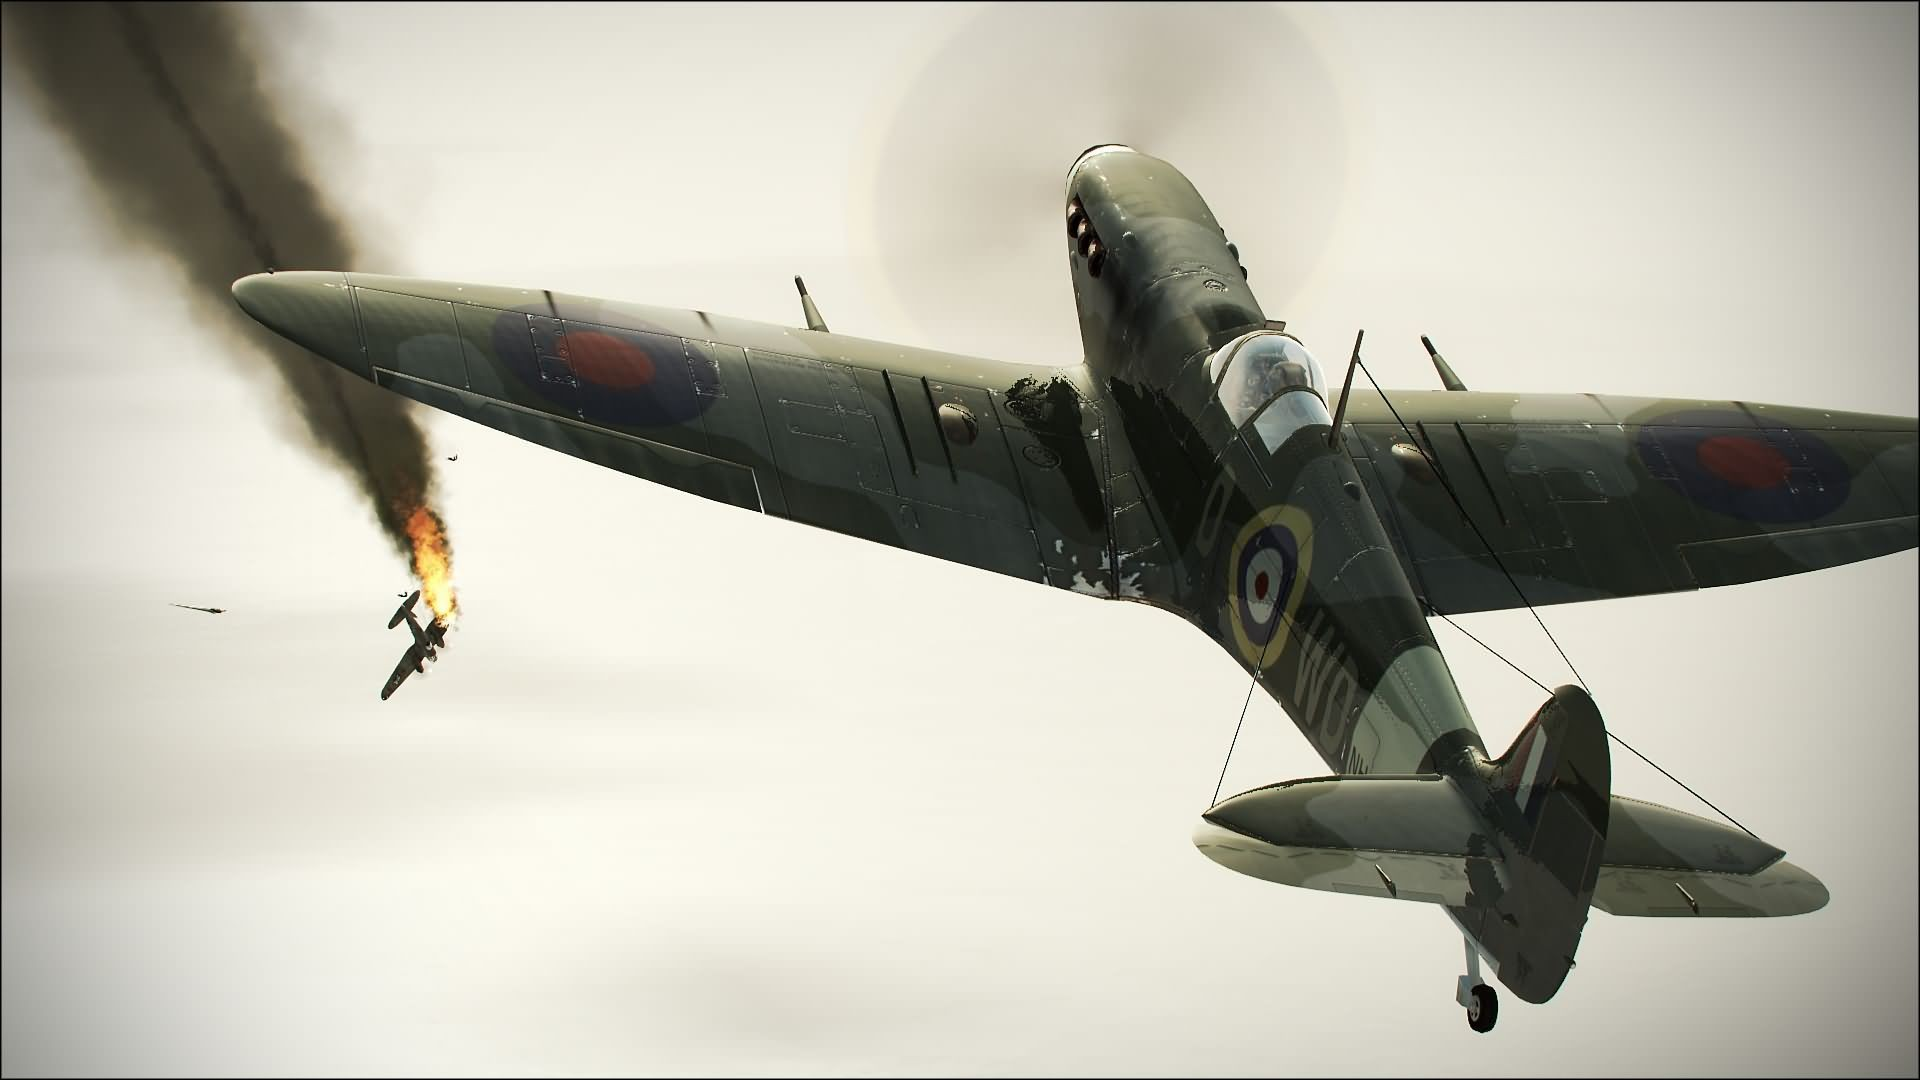 WW2 Aircraft Strike